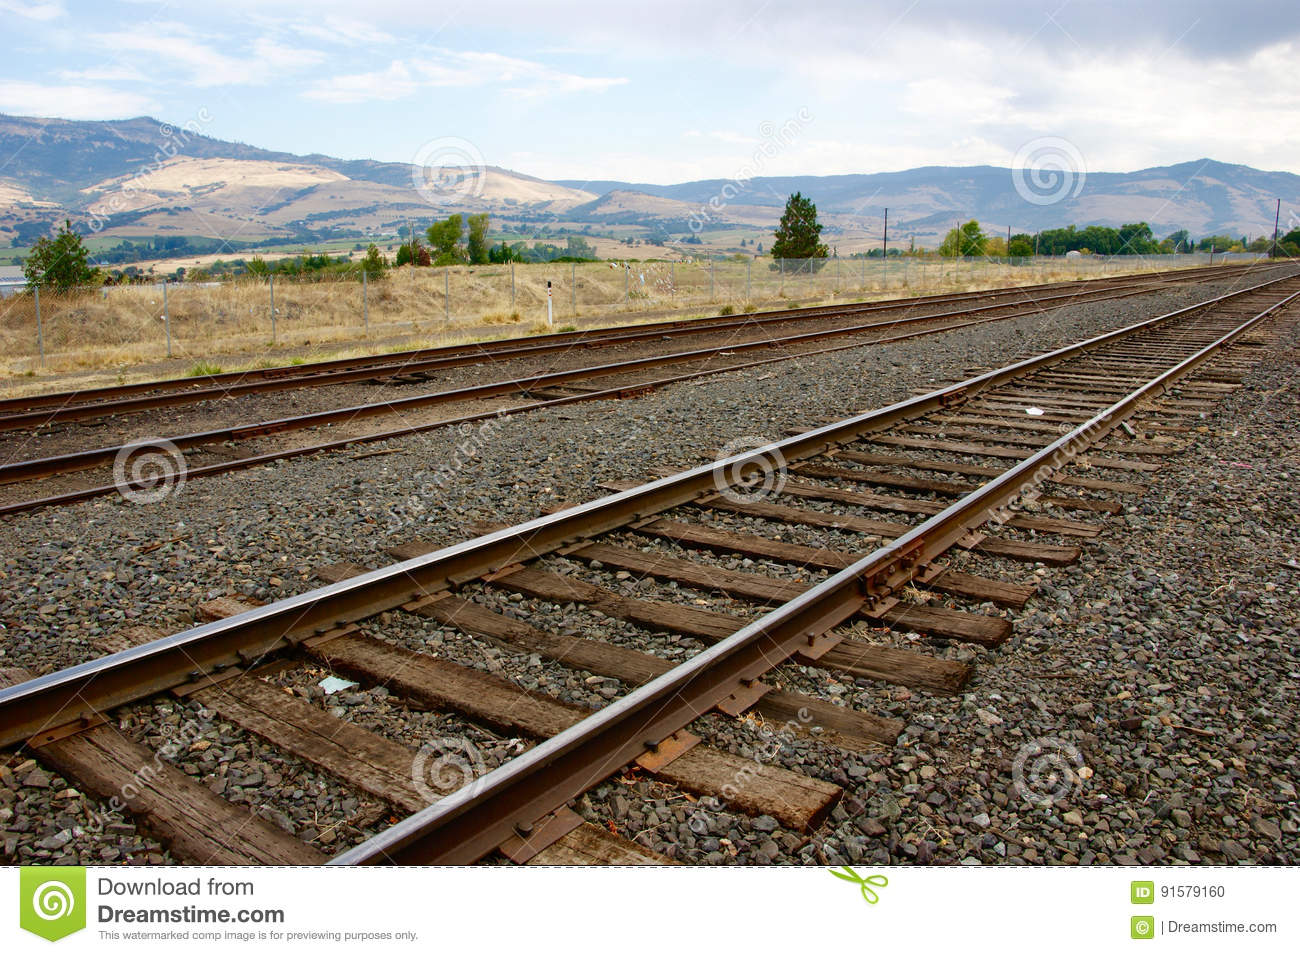 Landscape With A Railroad Track And Mountains In The